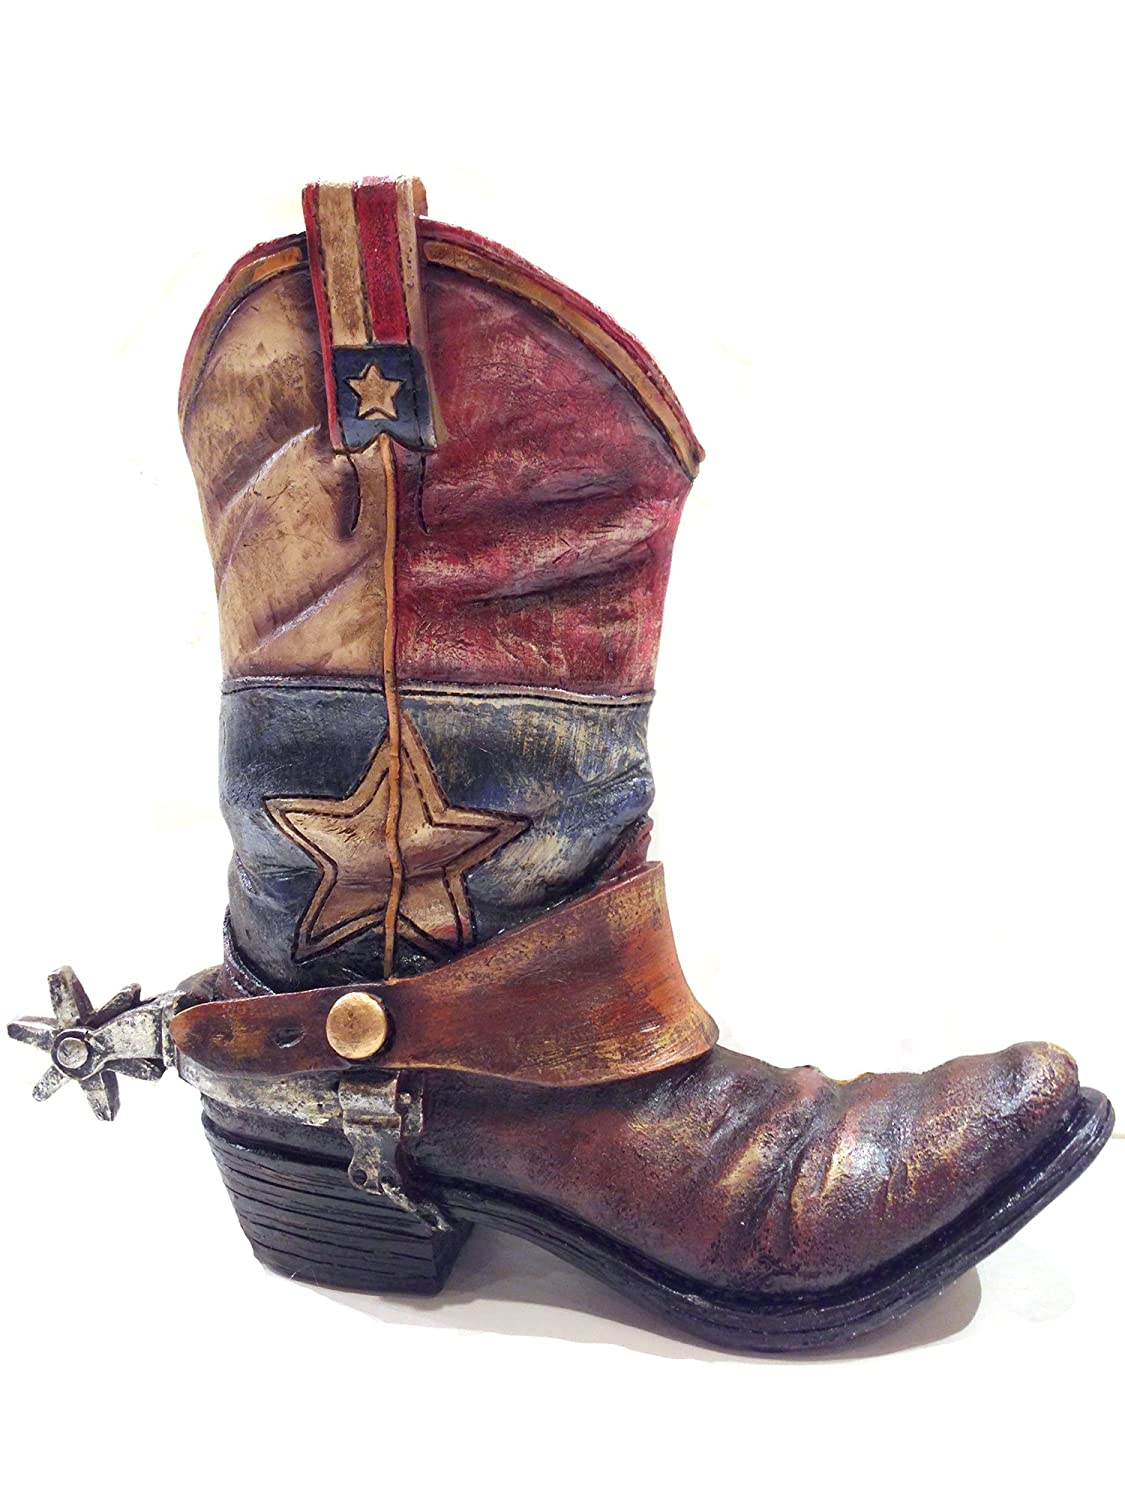 Texas Lone Star Cowboy Boot with Spur Vase Planter for Western Decor